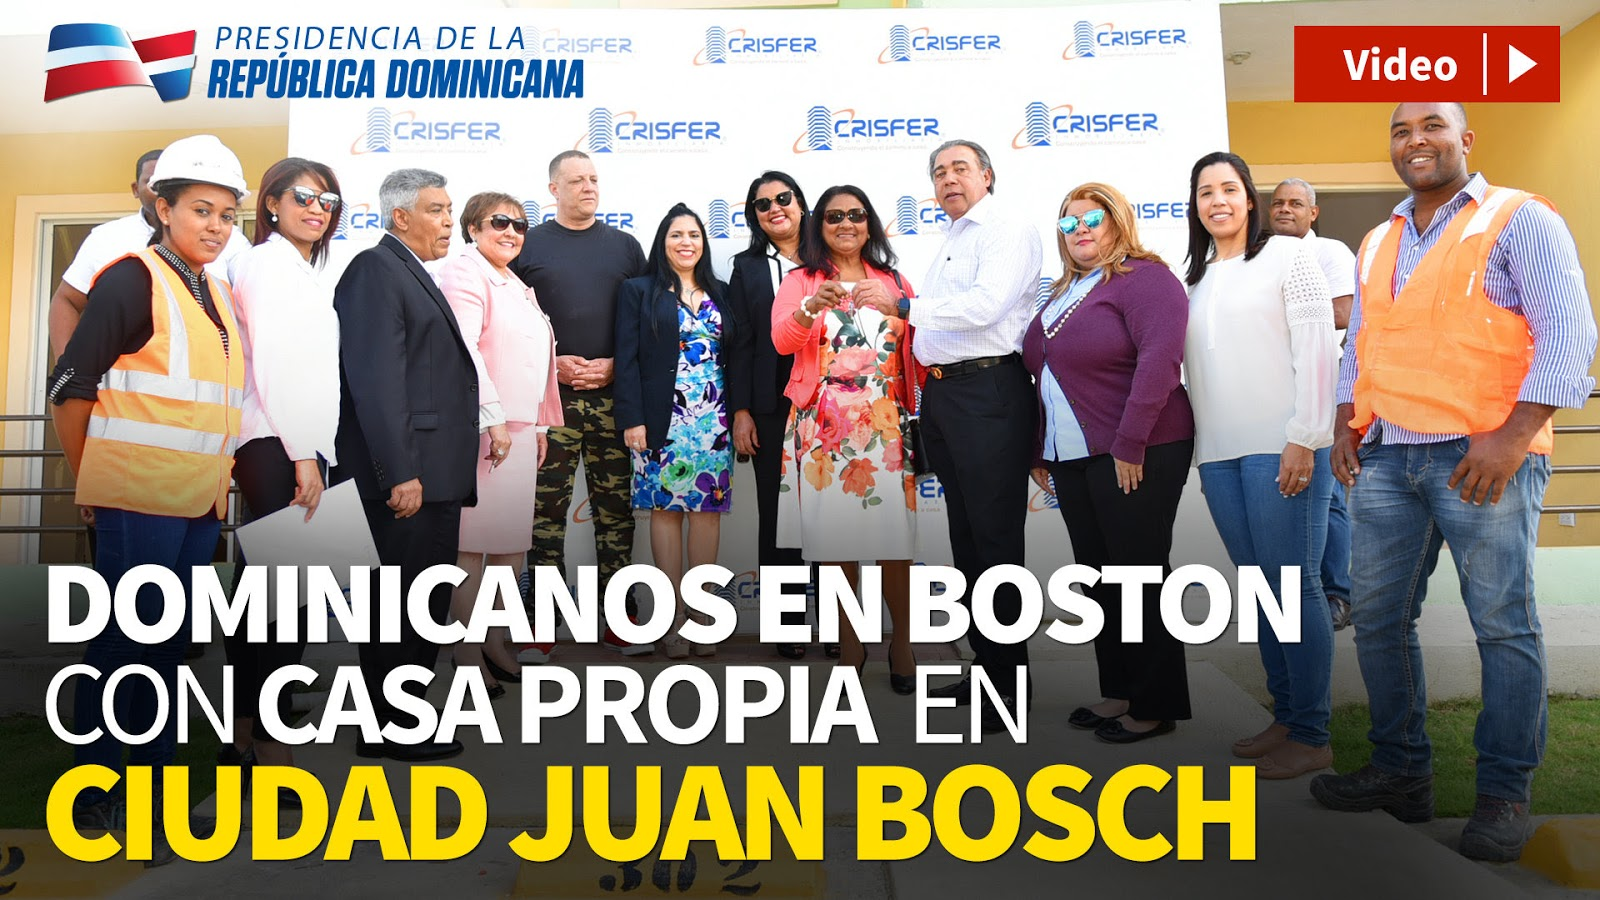 VIDEO: Dominicanos residentes en Boston adquieren 45 viviendas en Ciudad Juan Bosch